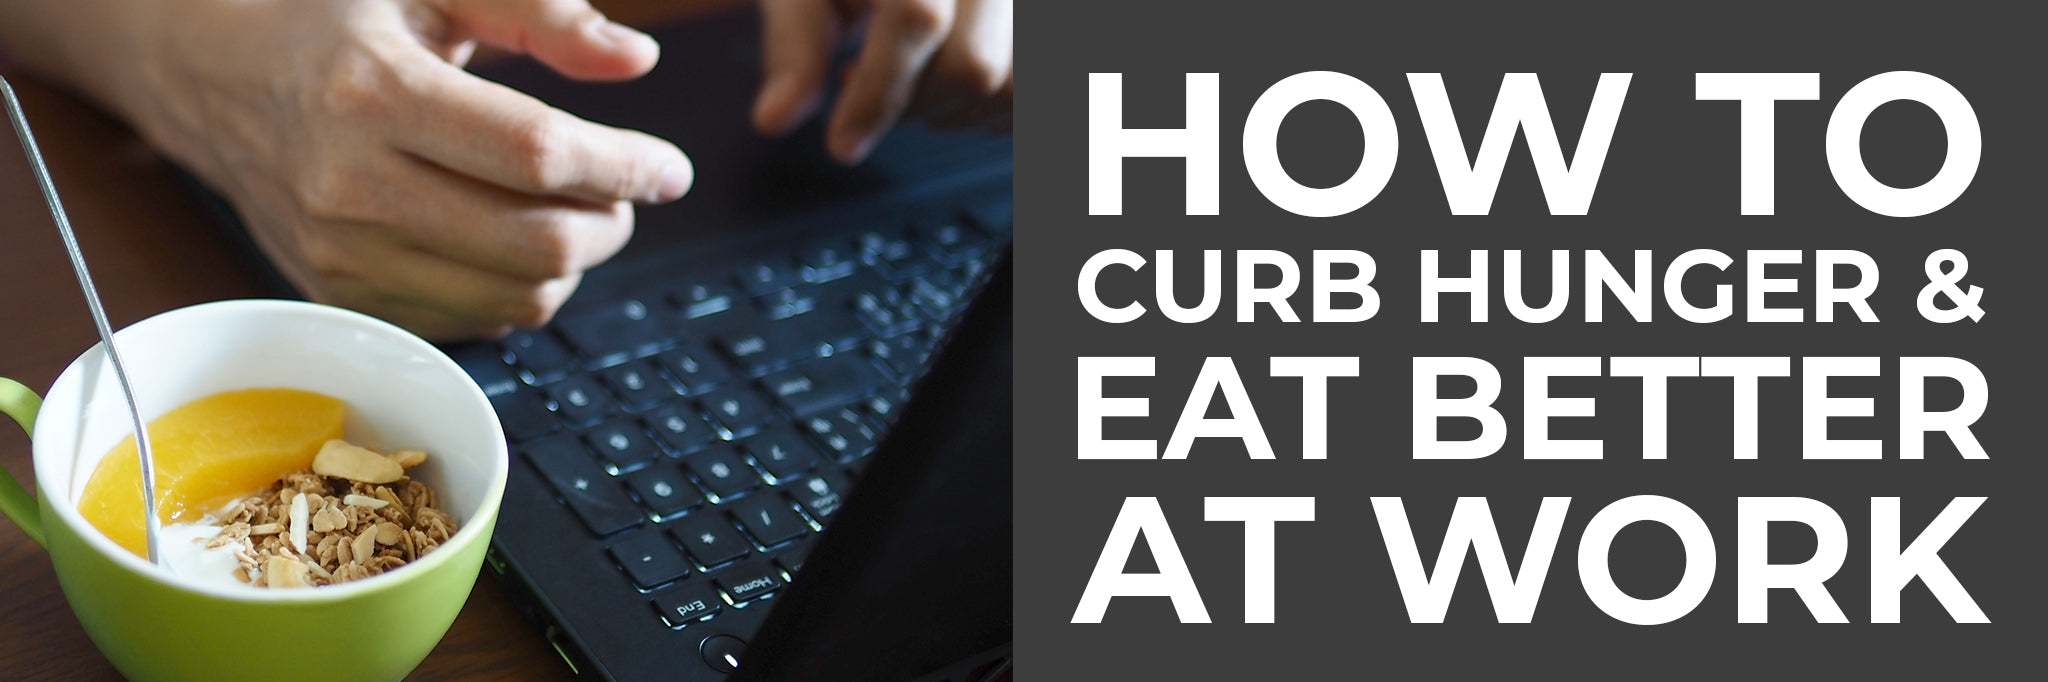 How to curb hunger and eat better at work